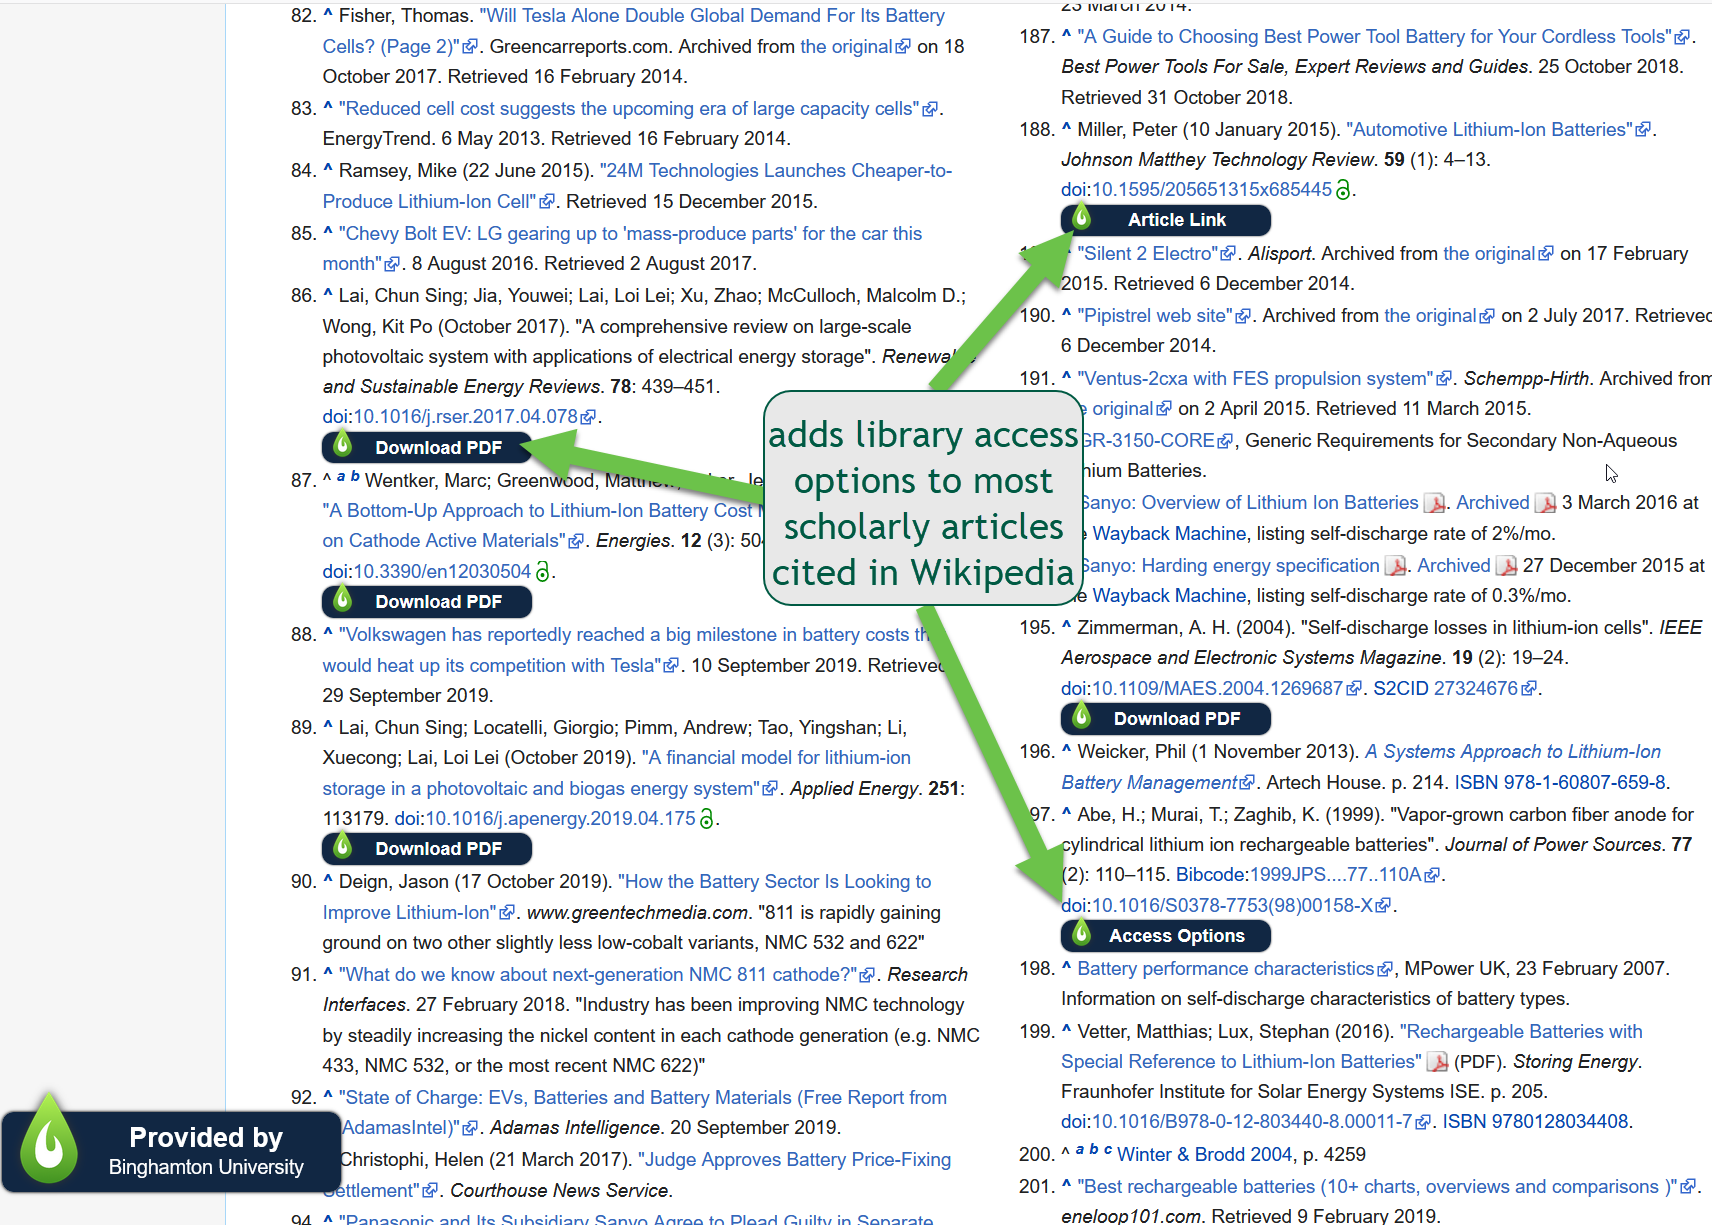 LibKey Nomad in Wikipedia Reference List